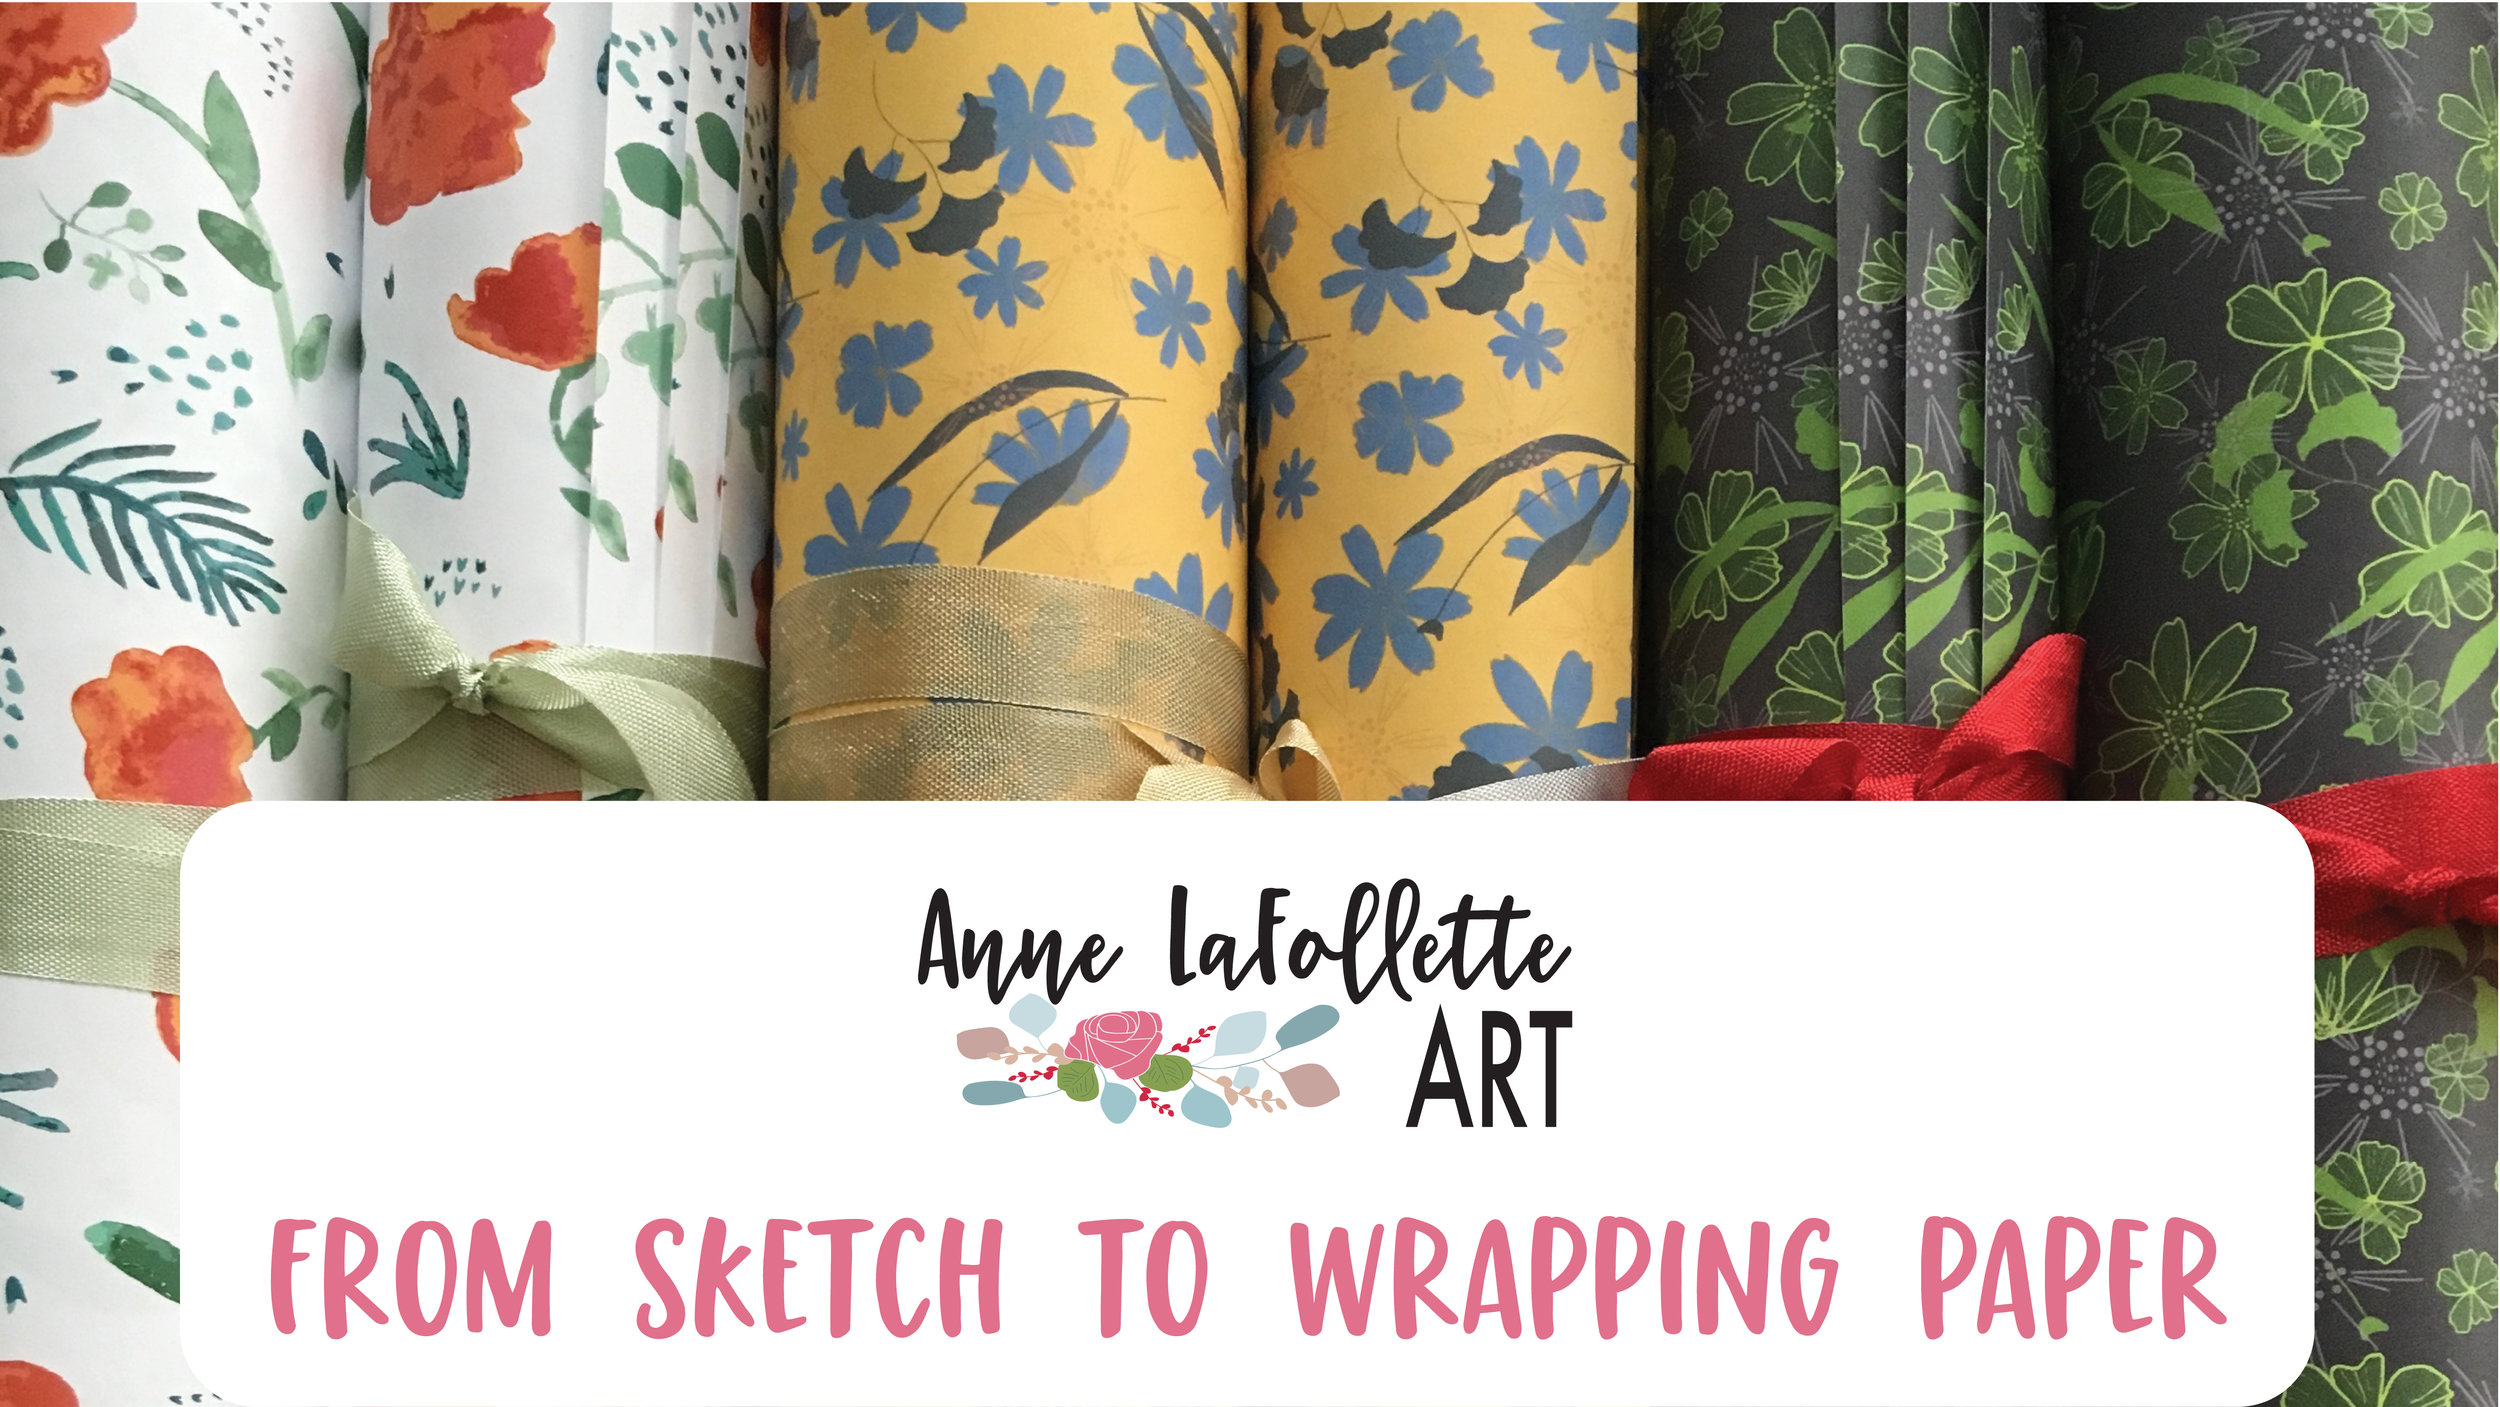 From Sketch to Wrapping Paper